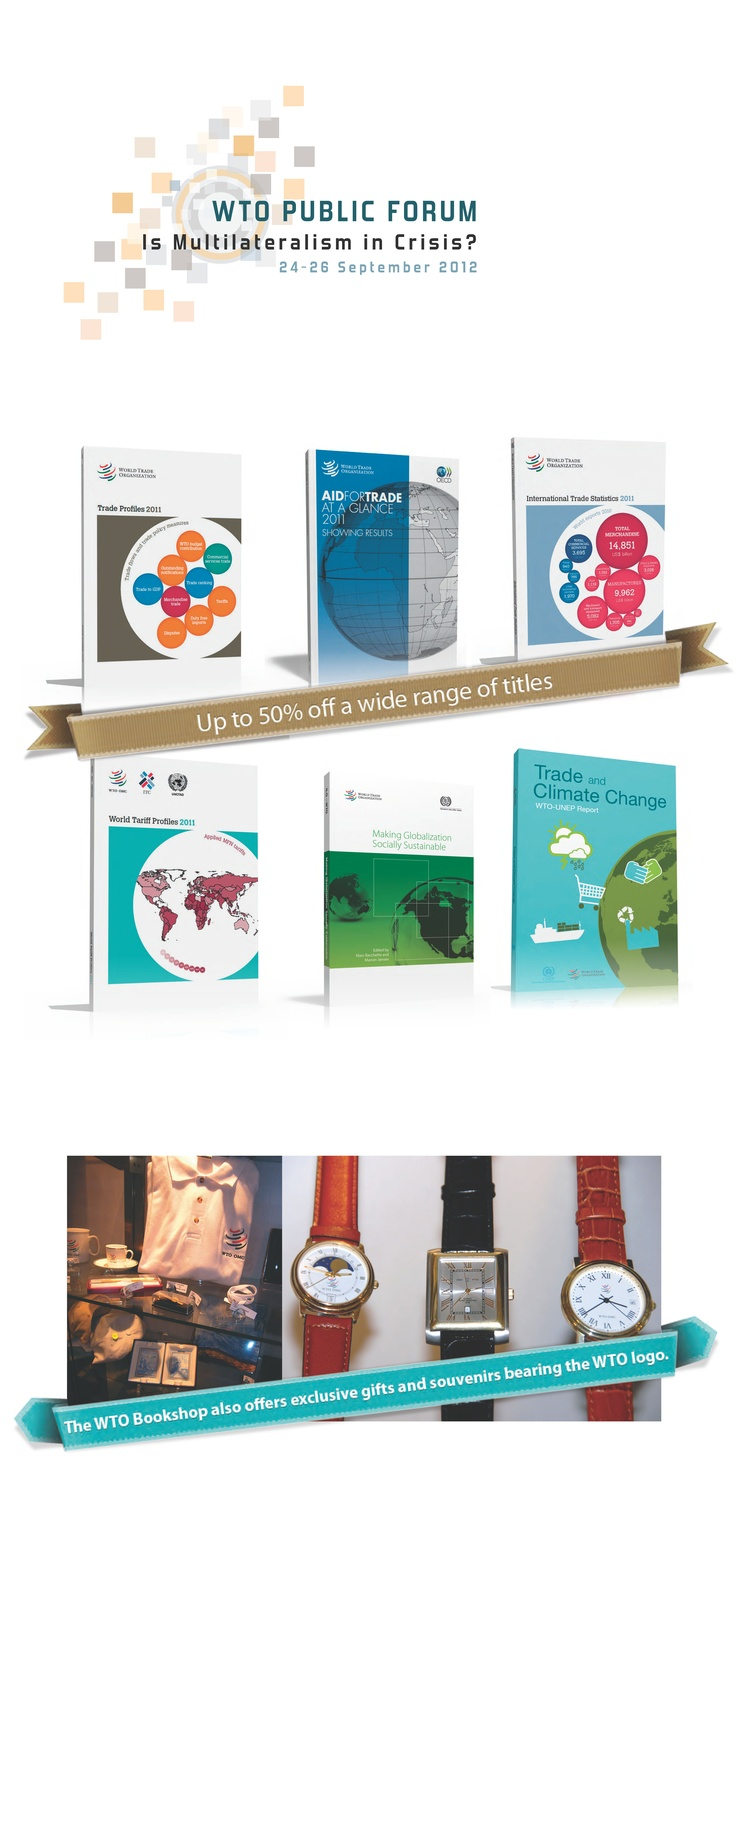 WTO Public Forum 2012   > If you are attending the WTO Public Forum 2012 in Geneva, Switzerland, don't forget to visit the WTO Bookshop. Our co-publisher Cambridge University Press will also have a stand. Take advantage of special discounts during the event!